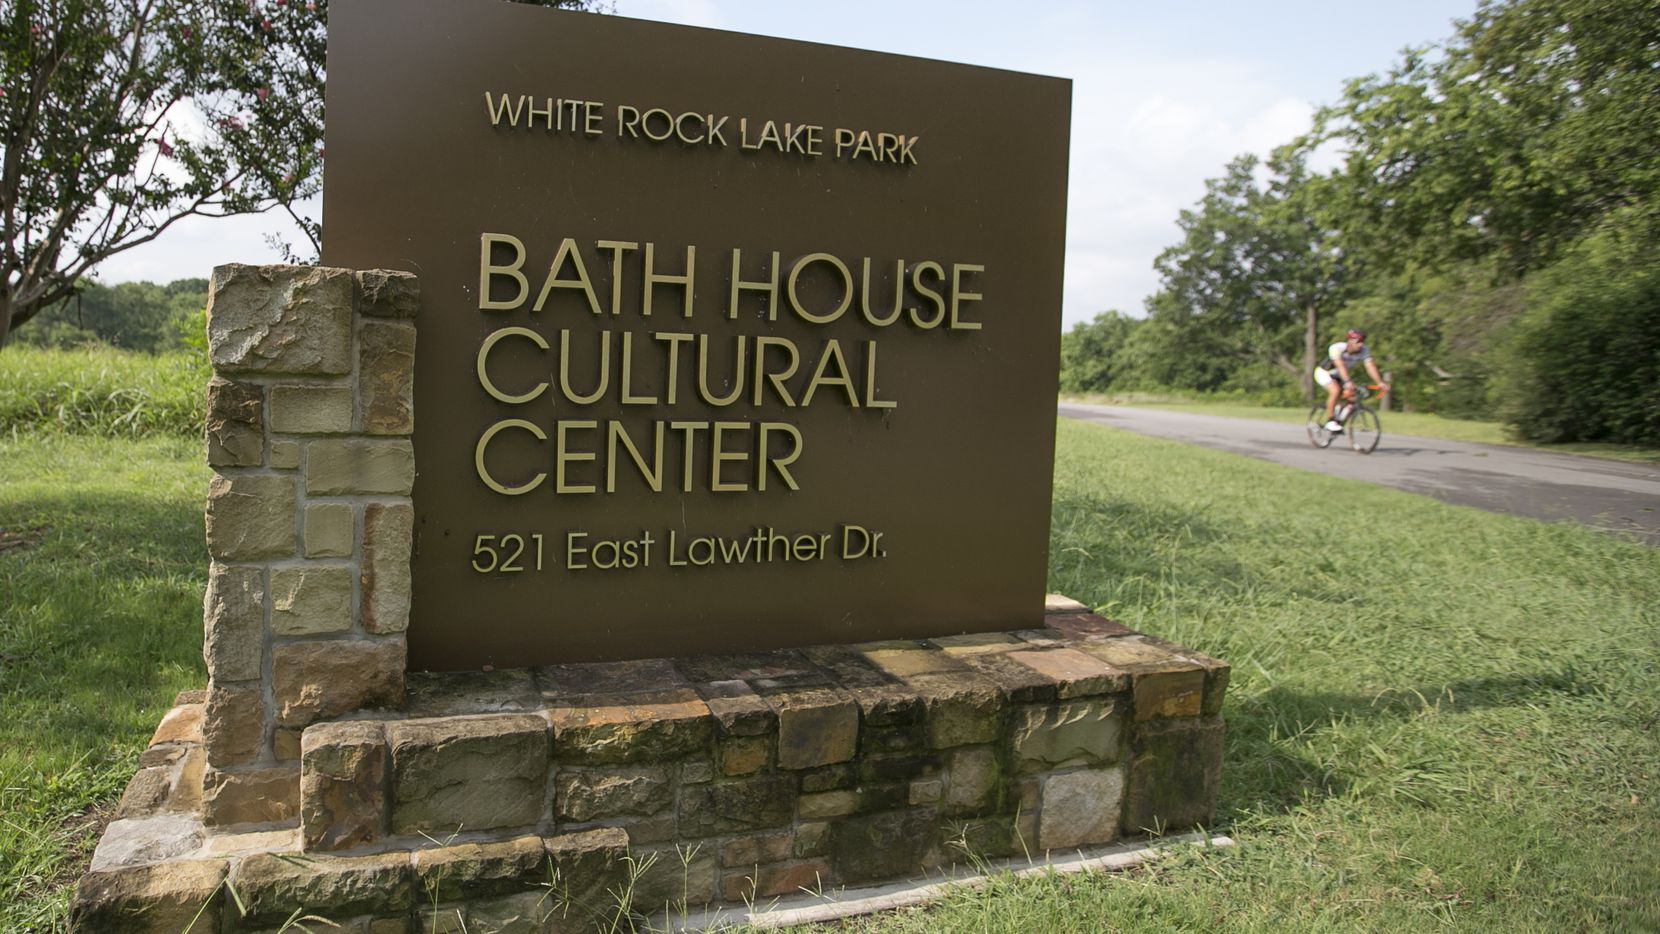 Bath House Cultural Center at White Rock Lake Park in Dallas on Thursday, August 3, 2017. (Tailyr Irvine/The Dallas Morning News)